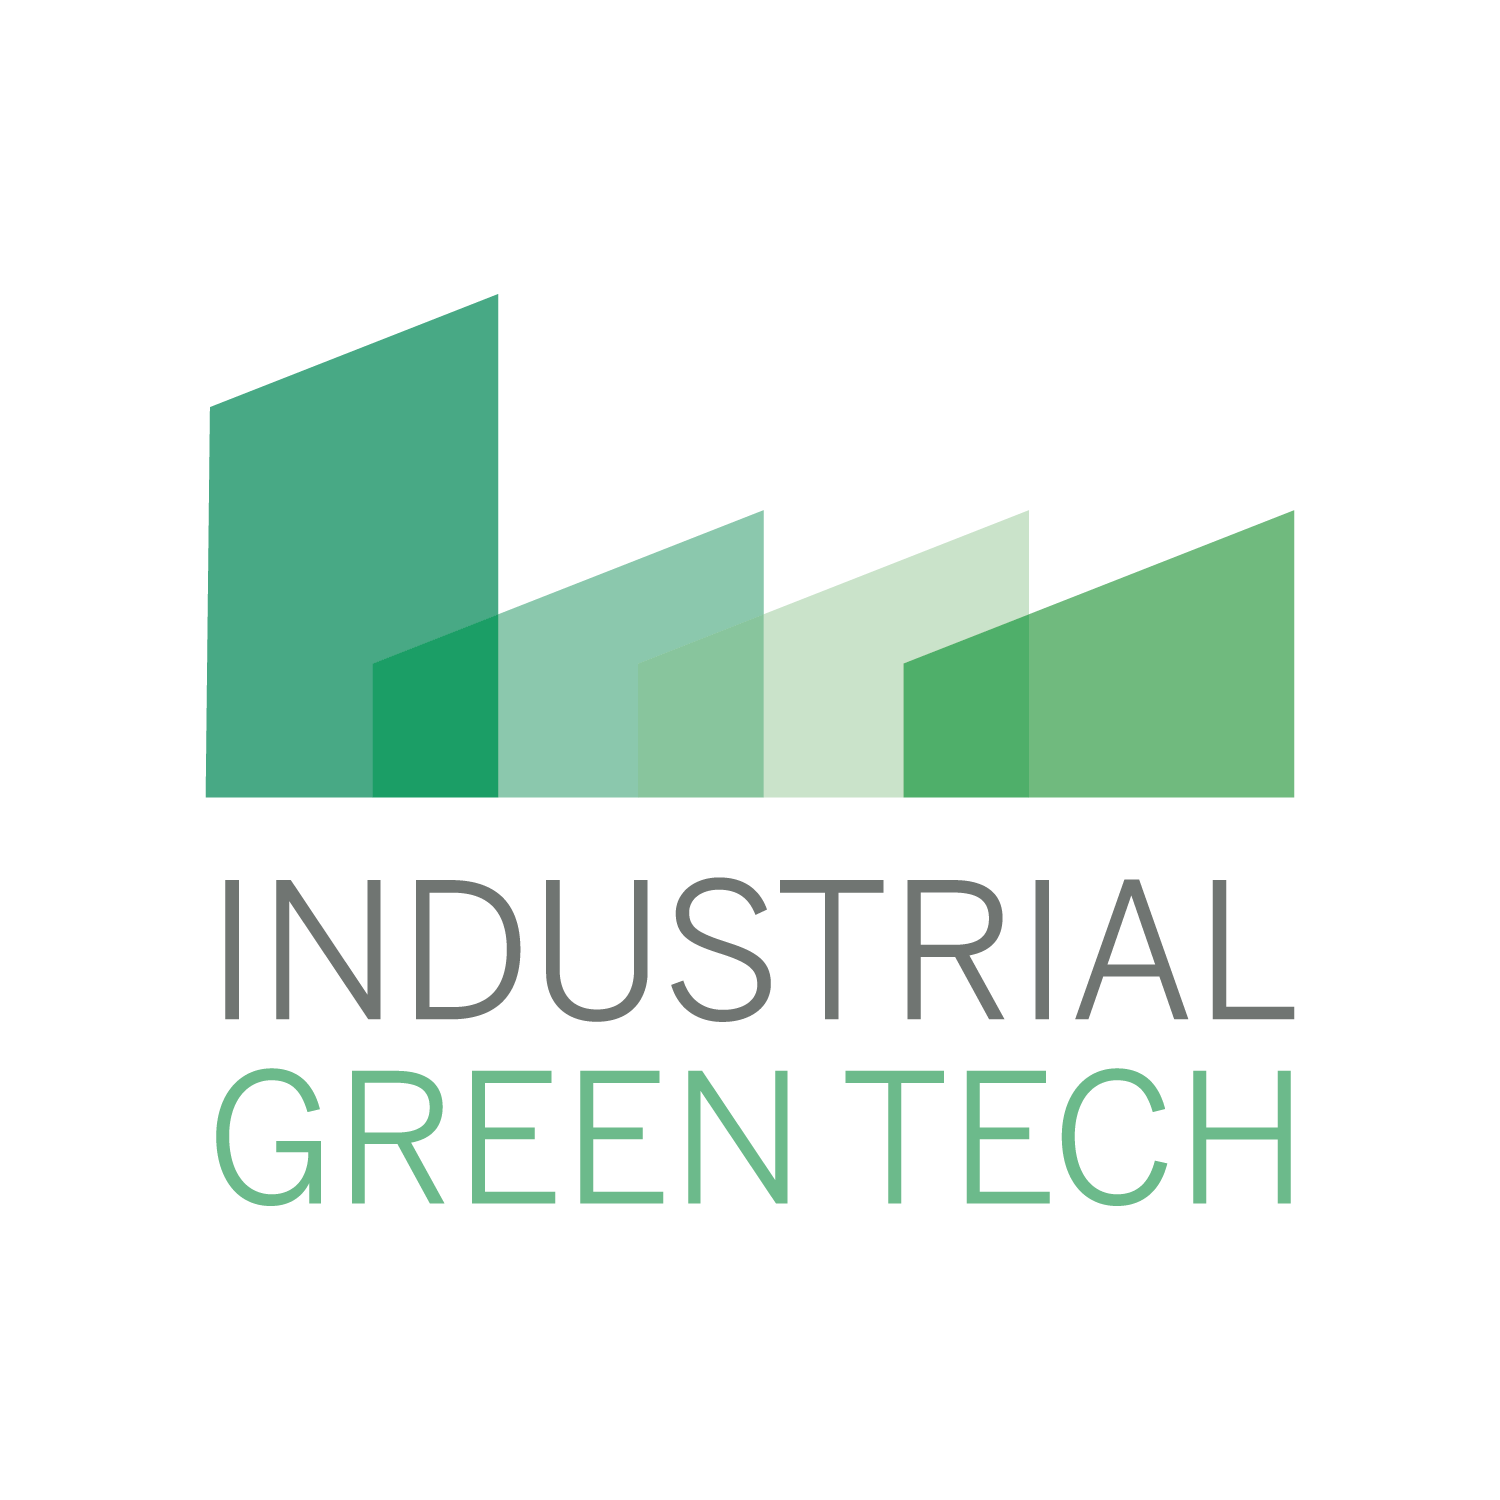 Industrial Green Tech